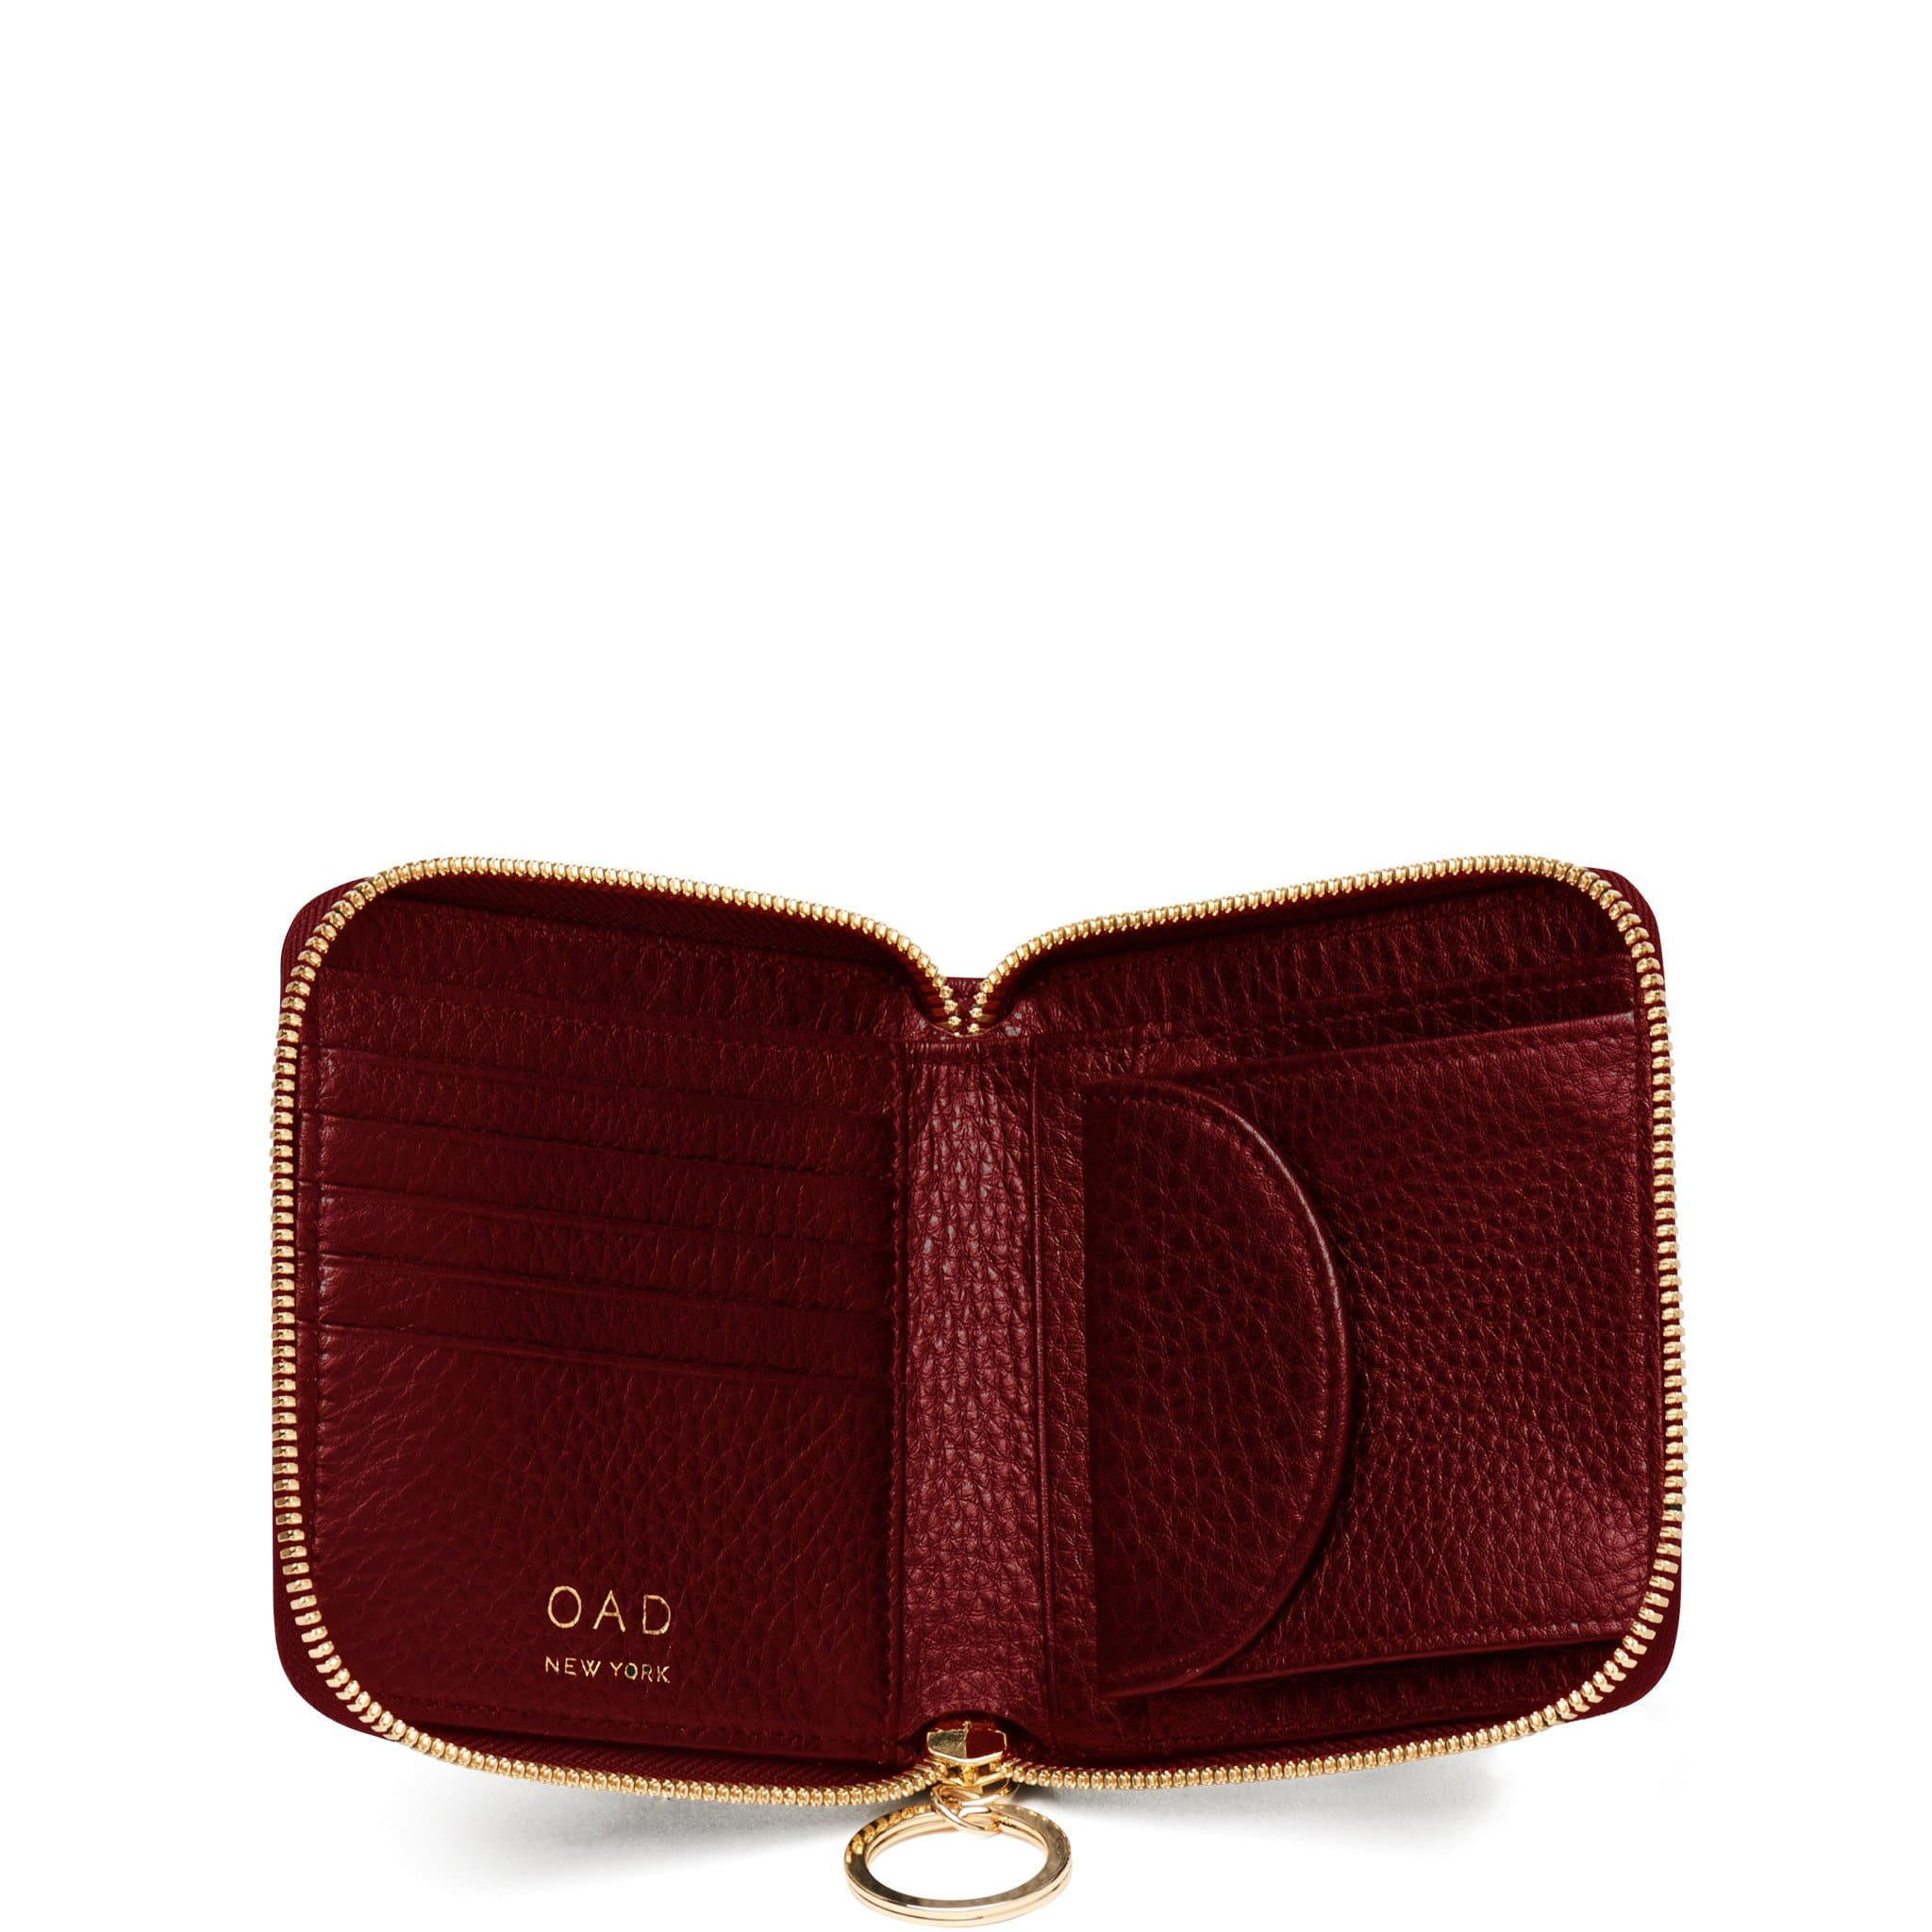 Half Zip Around Wallet - Dark Wine - OAD NEW YORK - 2